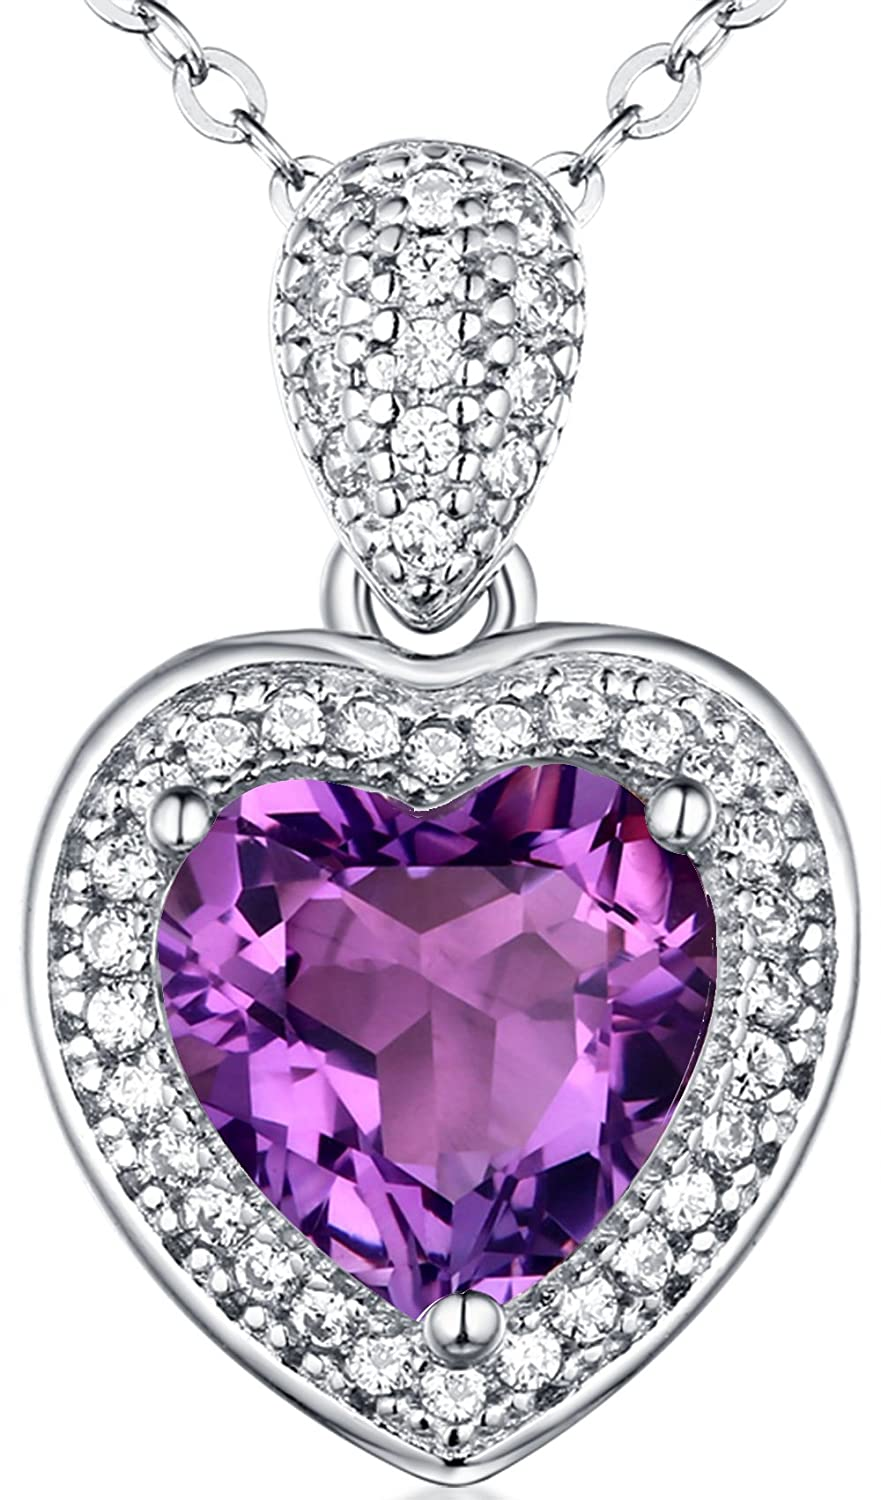 ♥Mother's Day Gift♥ Fine Jewelry for Mom Sterling Silver Natural Amethyst Gemstone Love ♥ Ocean Heart Pendant Necklace Anniversary Gifts for Her for Women